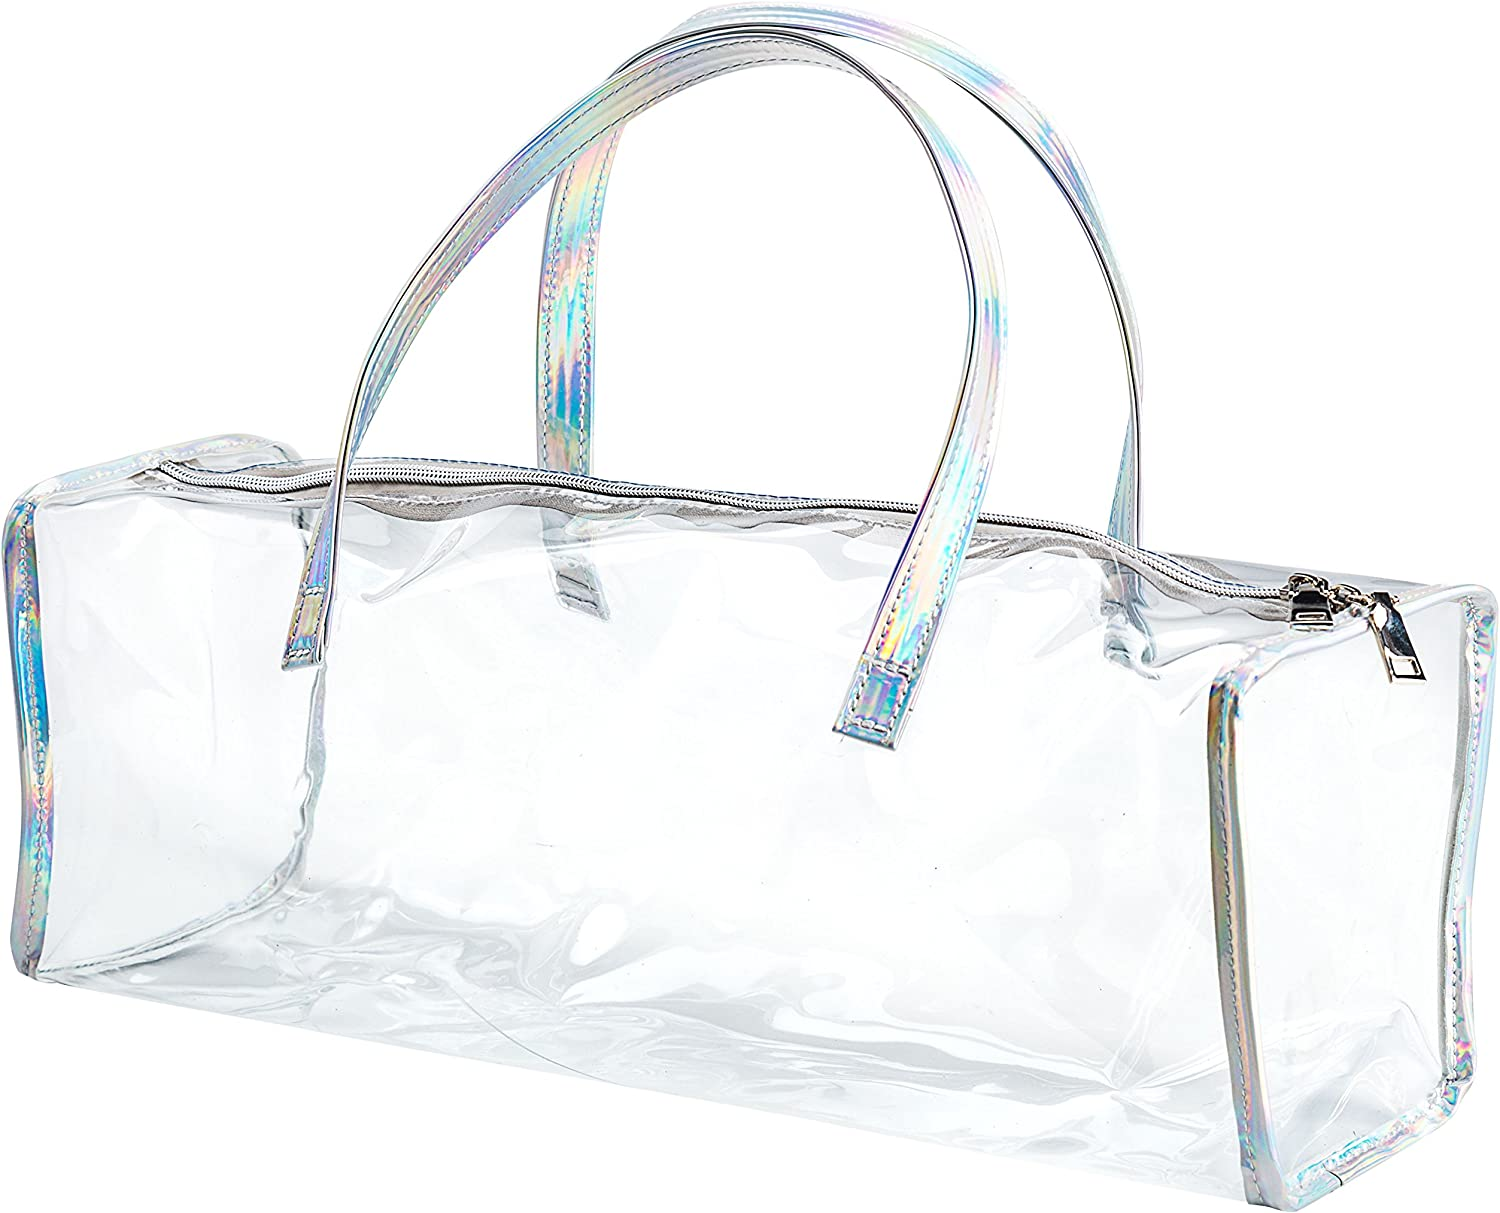 Family Size Travel Toiletry Case – Clear PVC Luggage Organizer Bag for Men and Women – Large Silver Hologram